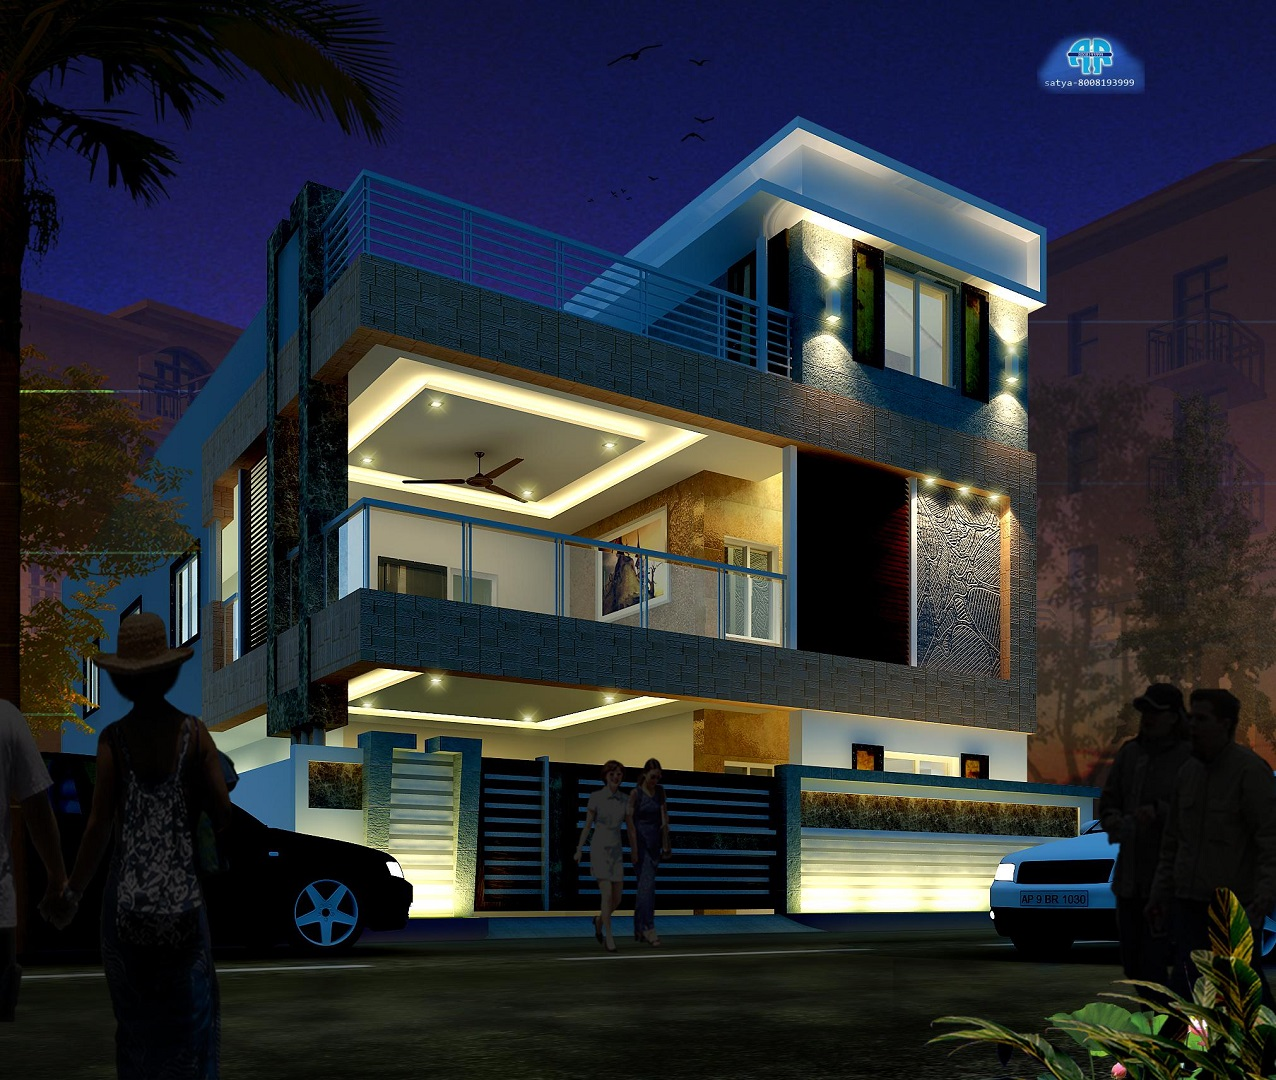 ar-concepts-krishna-ongole-residential-elevation-night-image